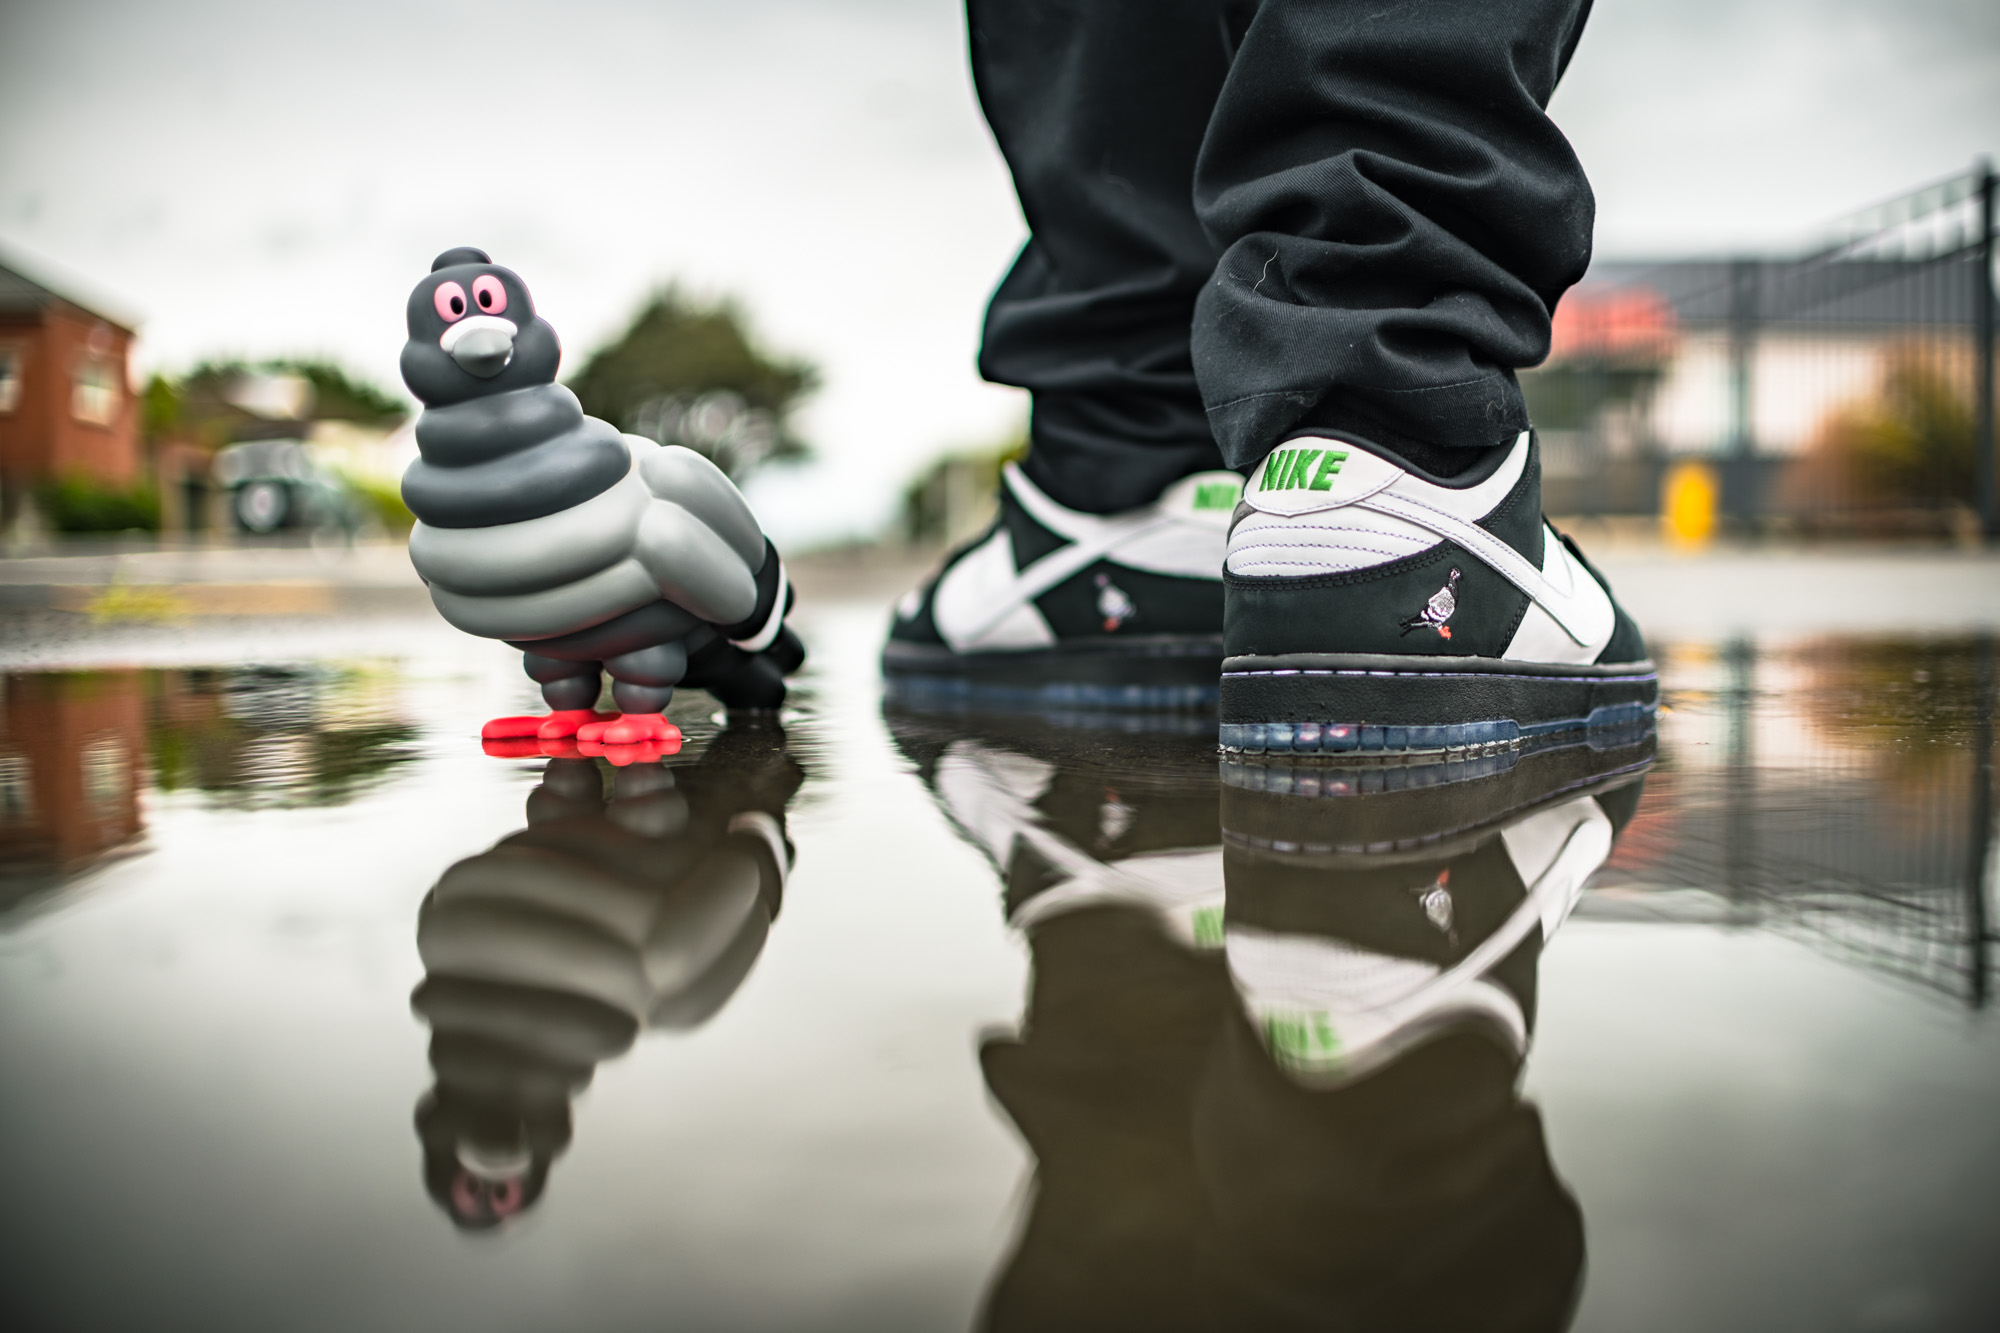 Nike SB Staple Panda Pigeon + Kid Robot Staple Pigeon